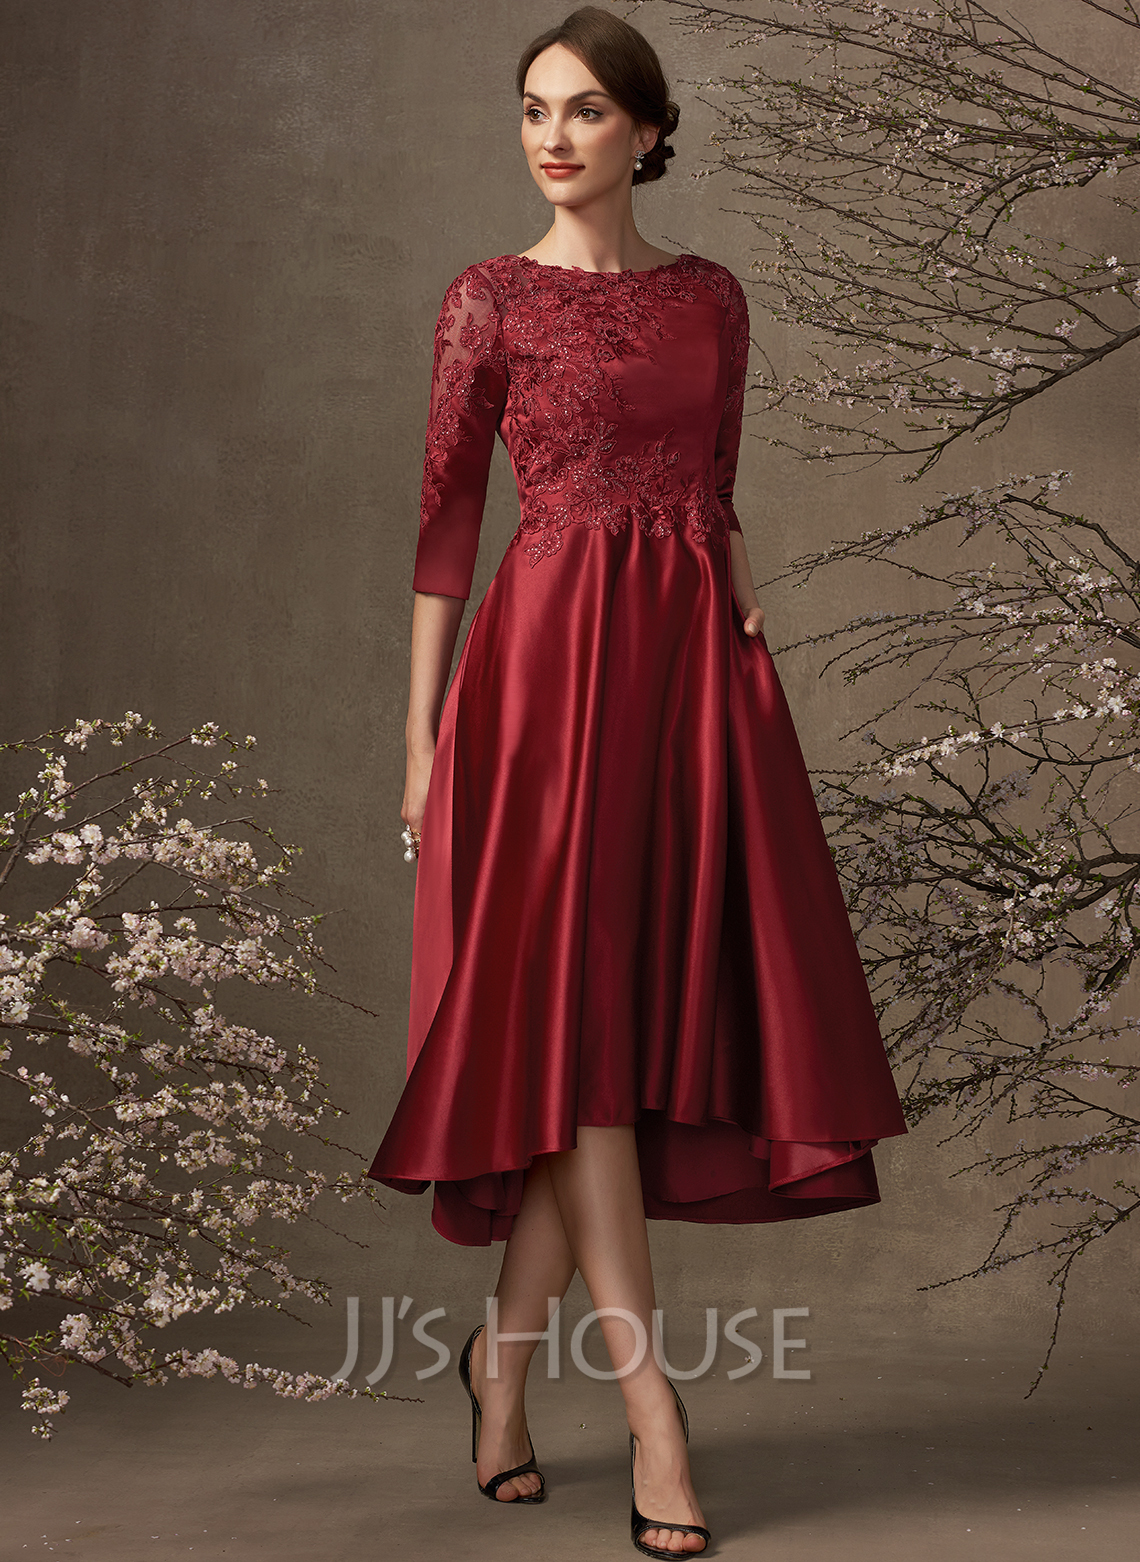 A-Line Scoop Neck Asymmetrical Satin Lace Mother of the Bride Dress With Sequins Pockets